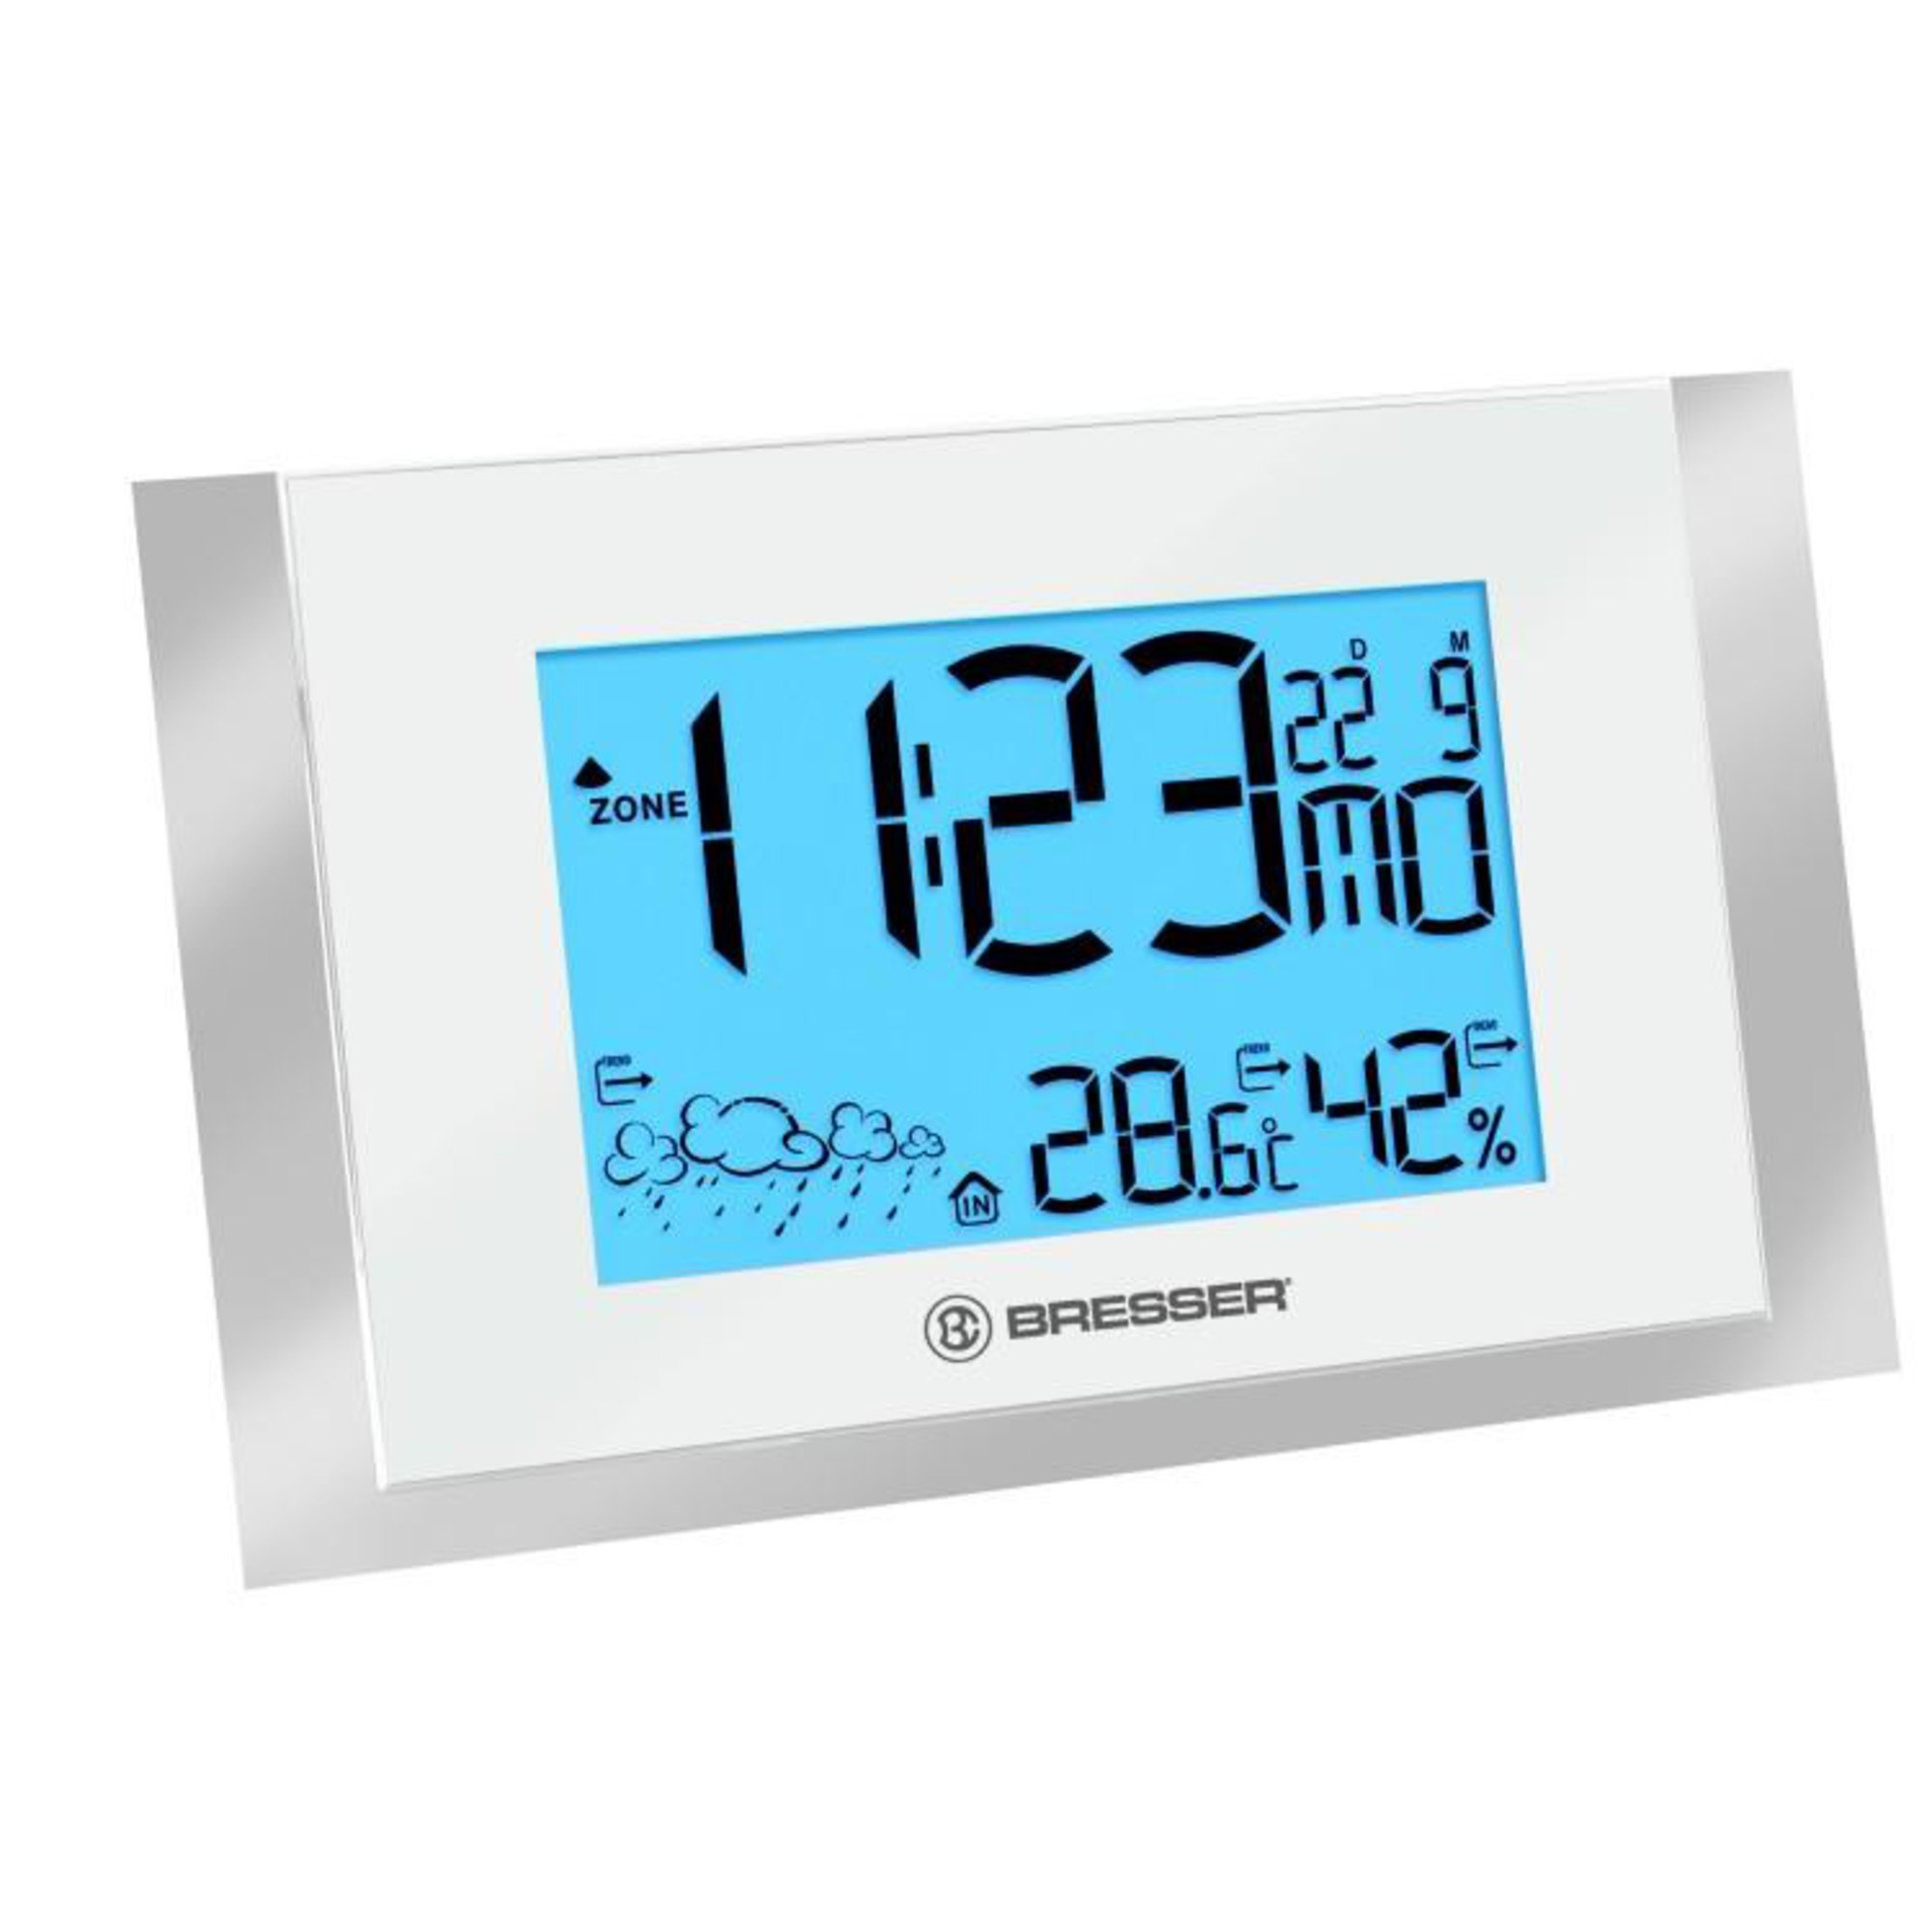 Bresser Wow200 Wireless Weather Station for Wall Mounting White/silver